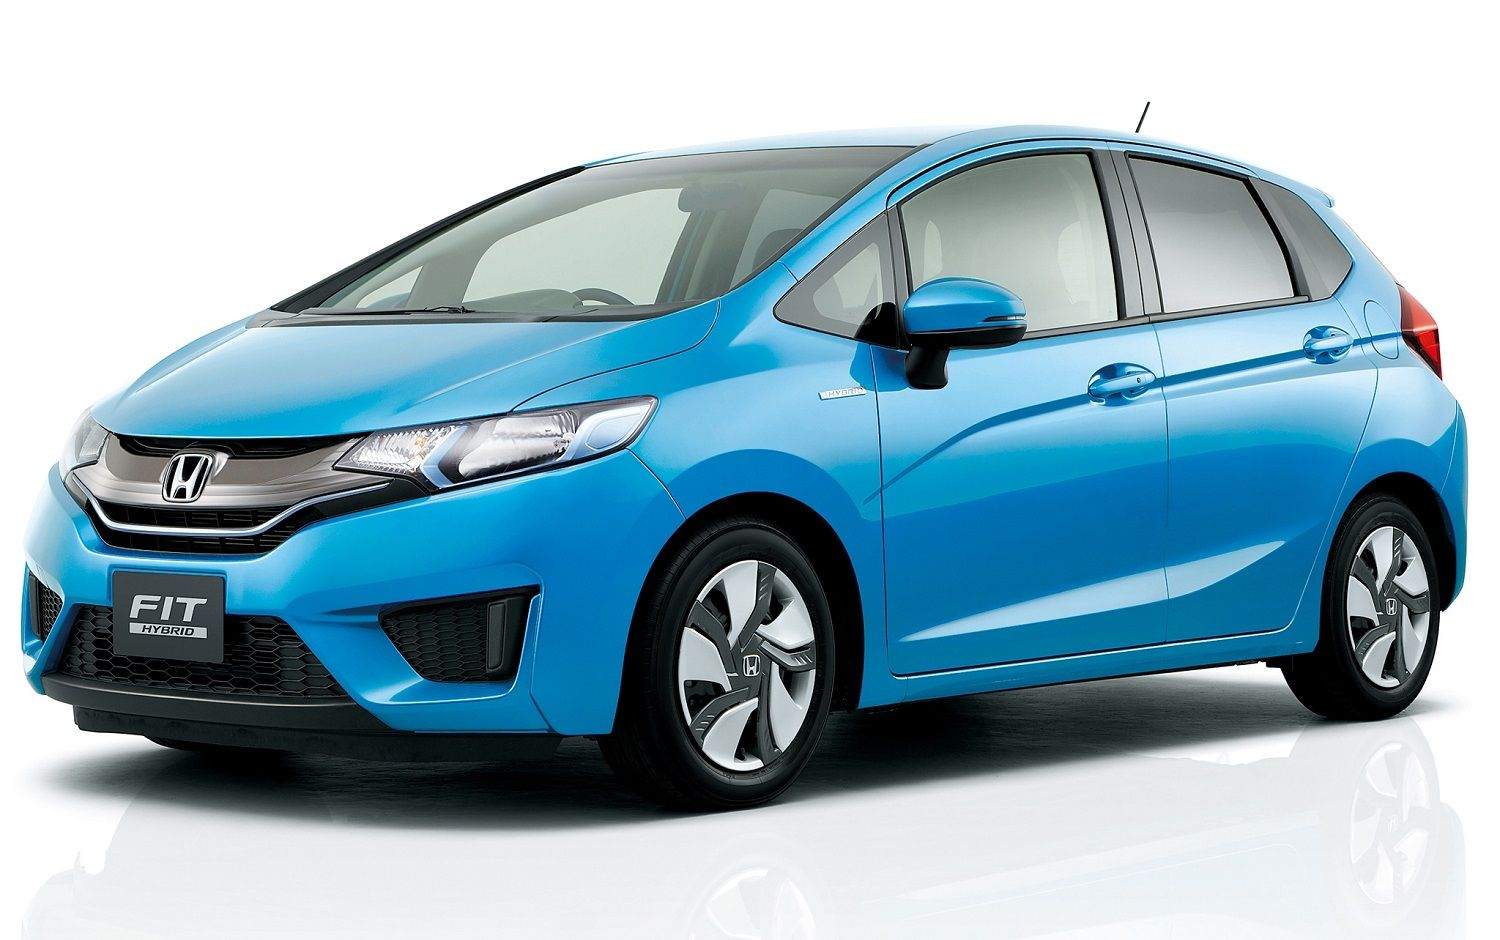 Honda Fit Subcompact Cars For Sale Honda Fit Hybrid Honda Fit 2015 Honda Fit